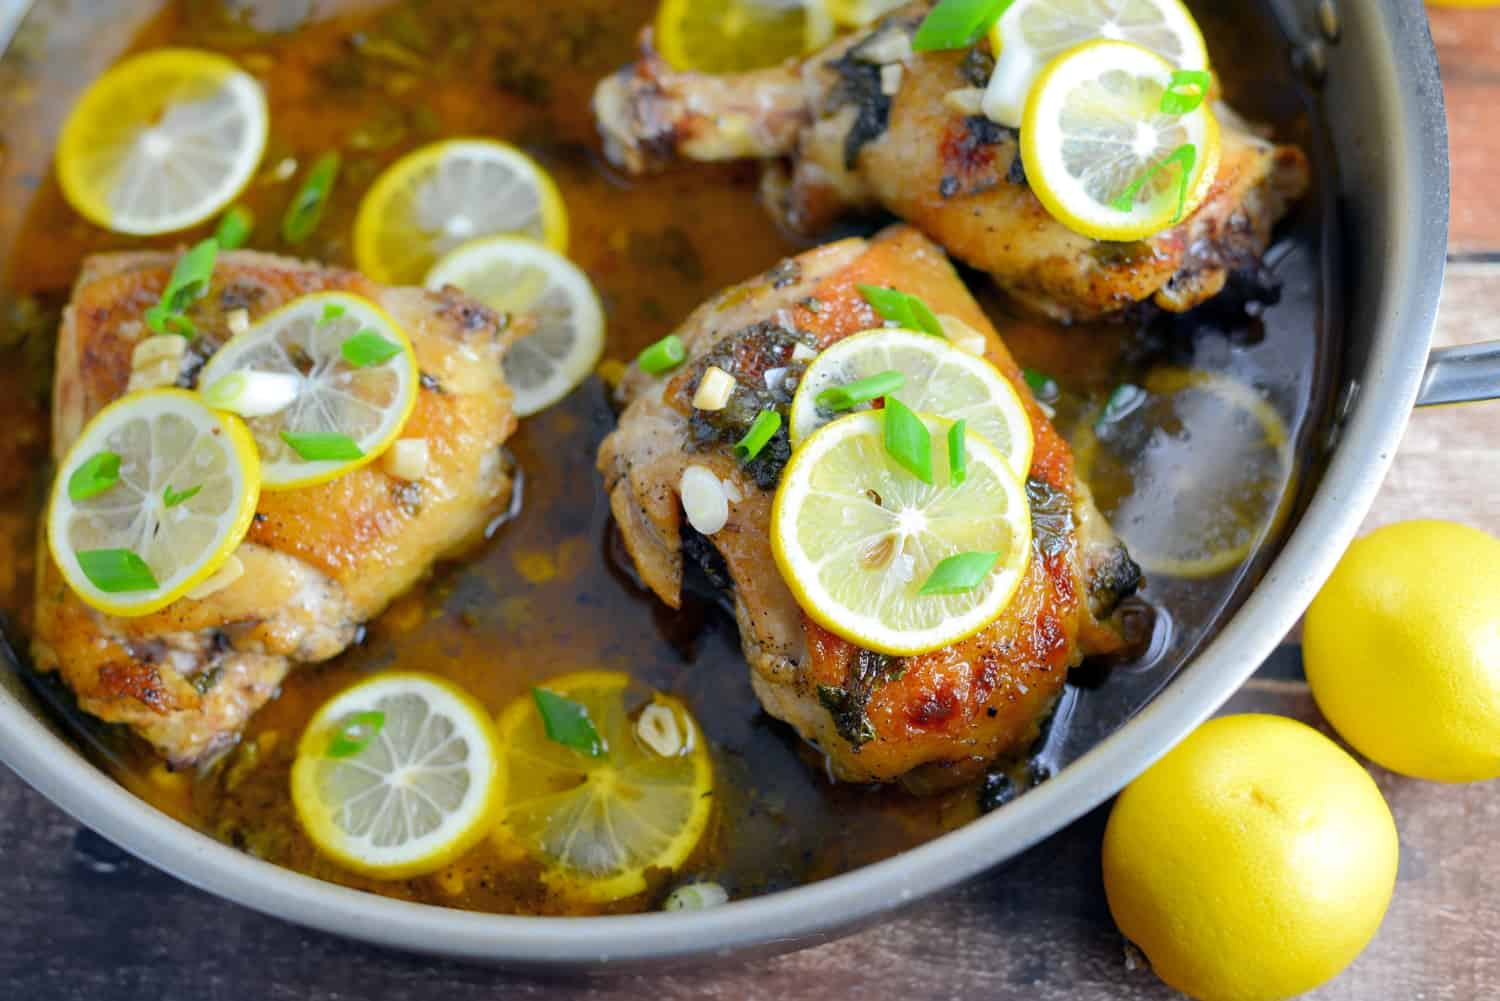 Lemon Garlic Chicken Recipe: This is one-pan dish is the best lemon chicken recipe out there! Use chicken breast, thighs or drumsticks. Tender and flavorful, serve this easy recipe over toasted couscous. www.savoryexperiments.com